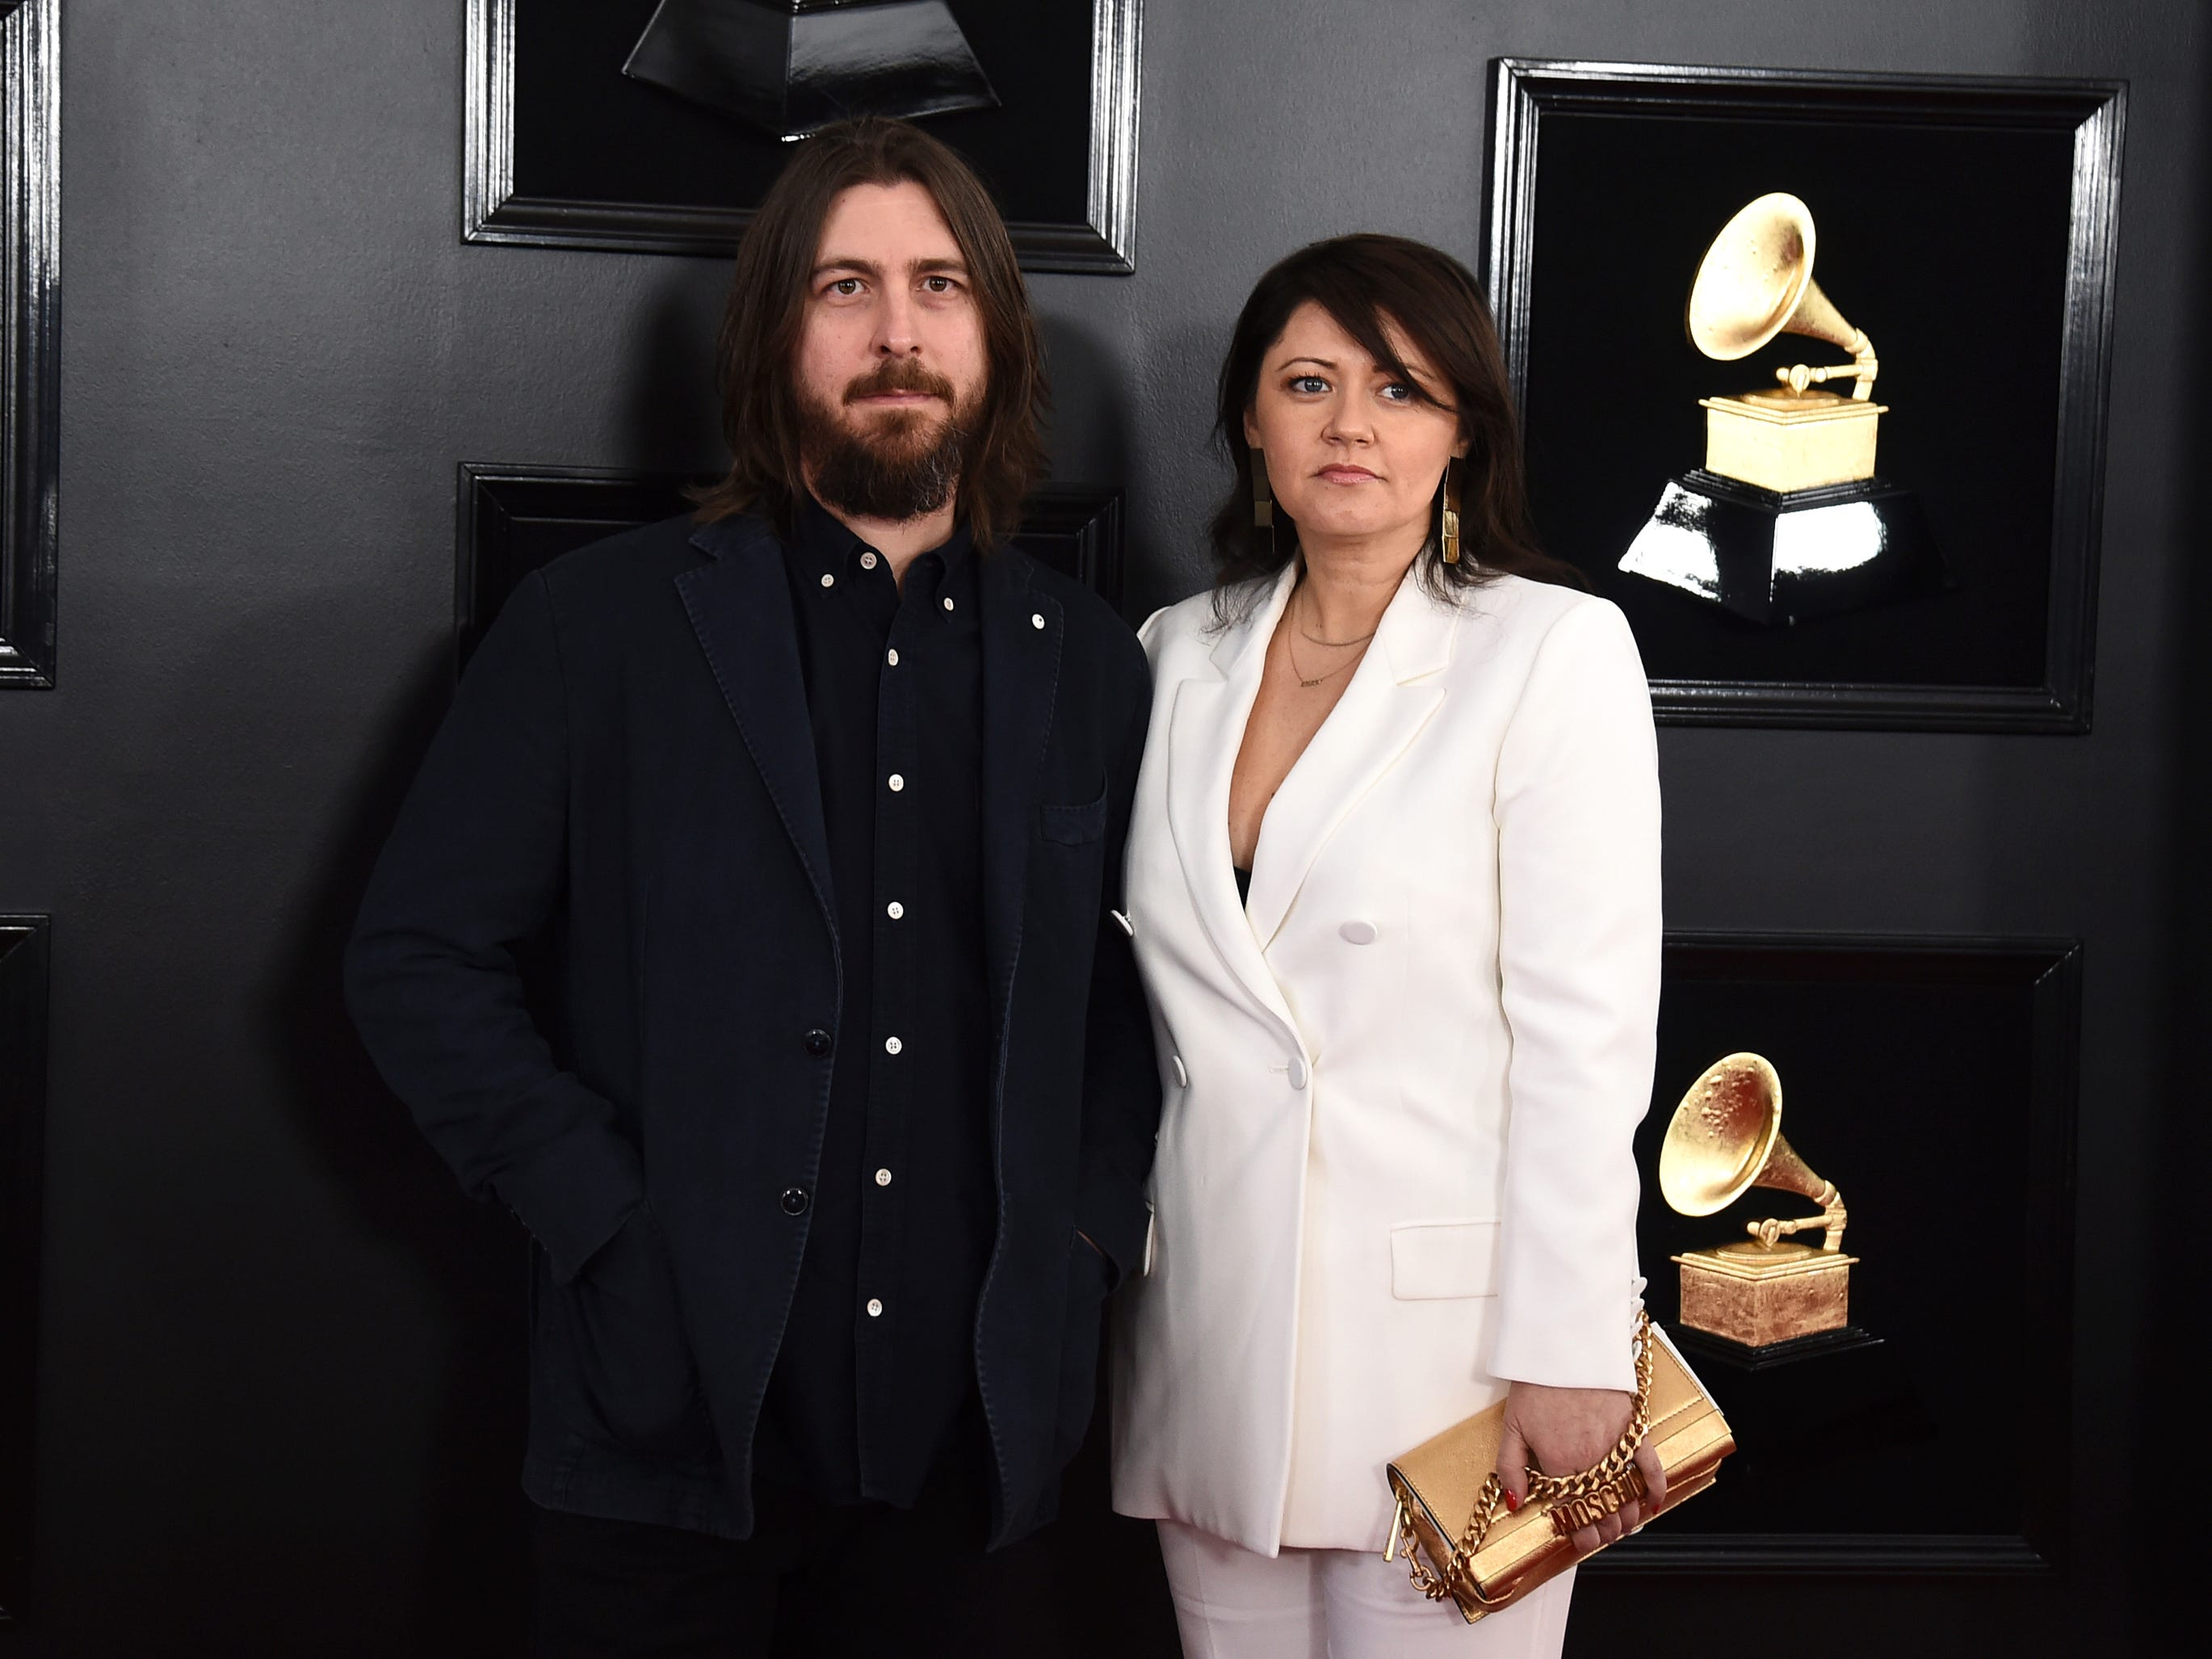 Dave Cobb, left, and Ledja Cobb arrive at the 61st annual Grammy Awards at the Staples Center on Sunday, Feb. 10, 2019, in Los Angeles.